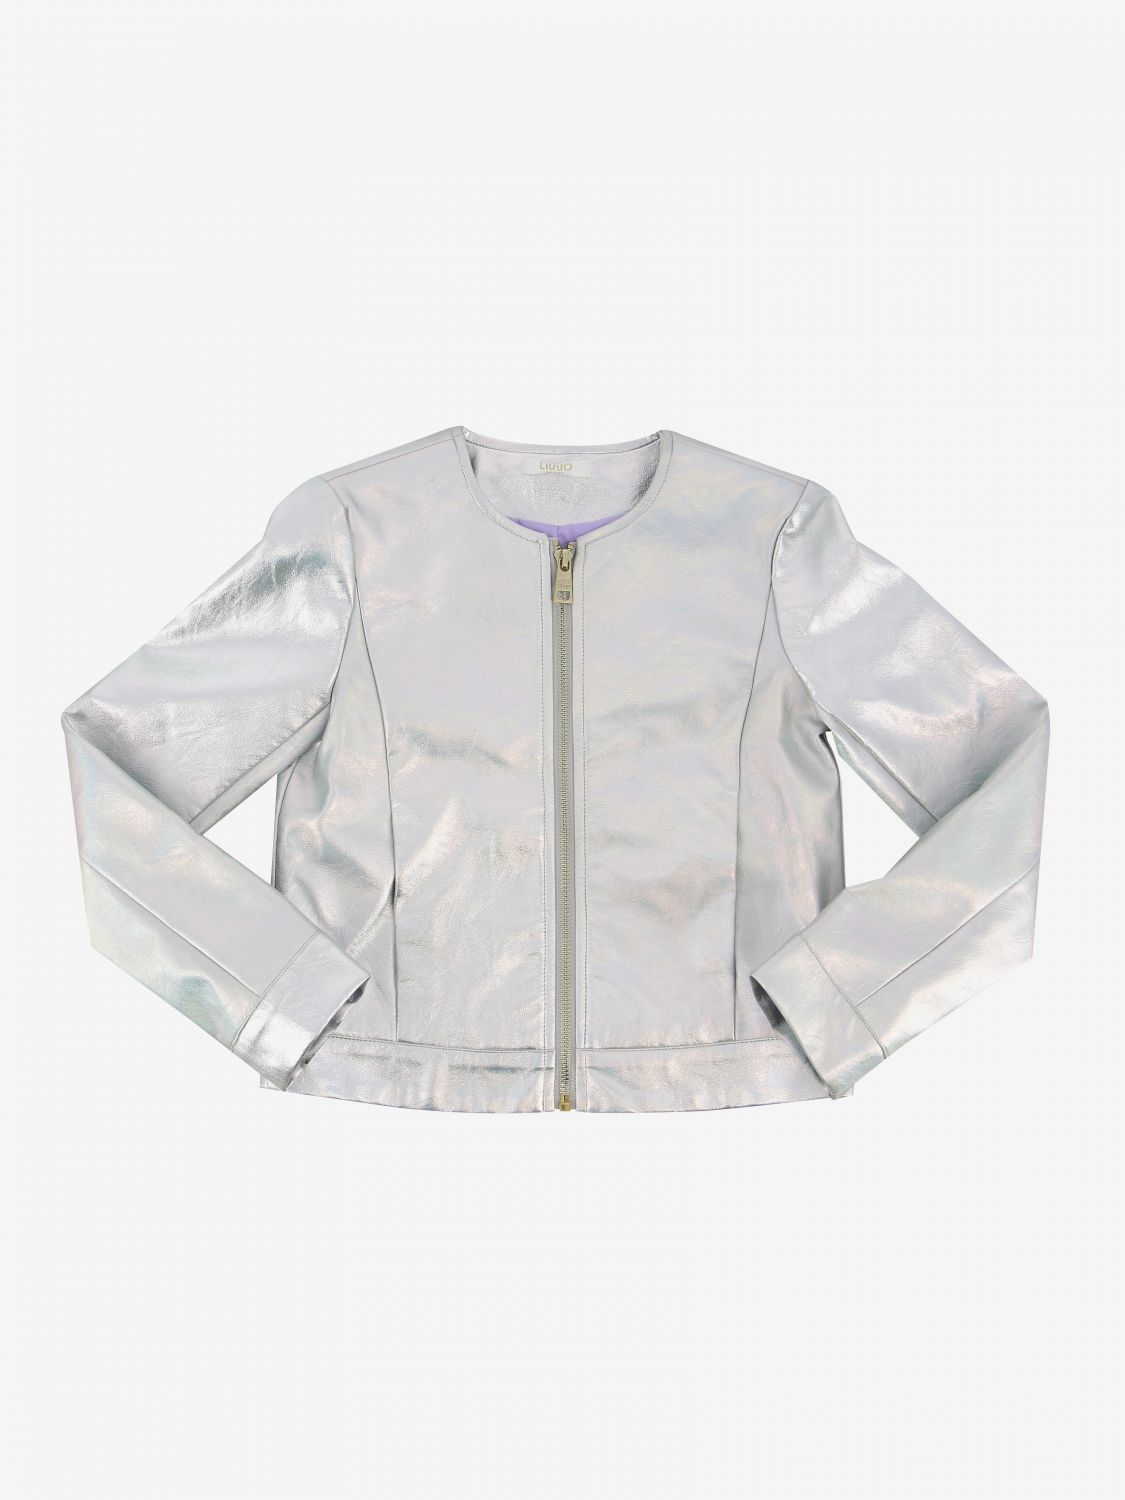 Liu Jo leather jacket with zip silver 1